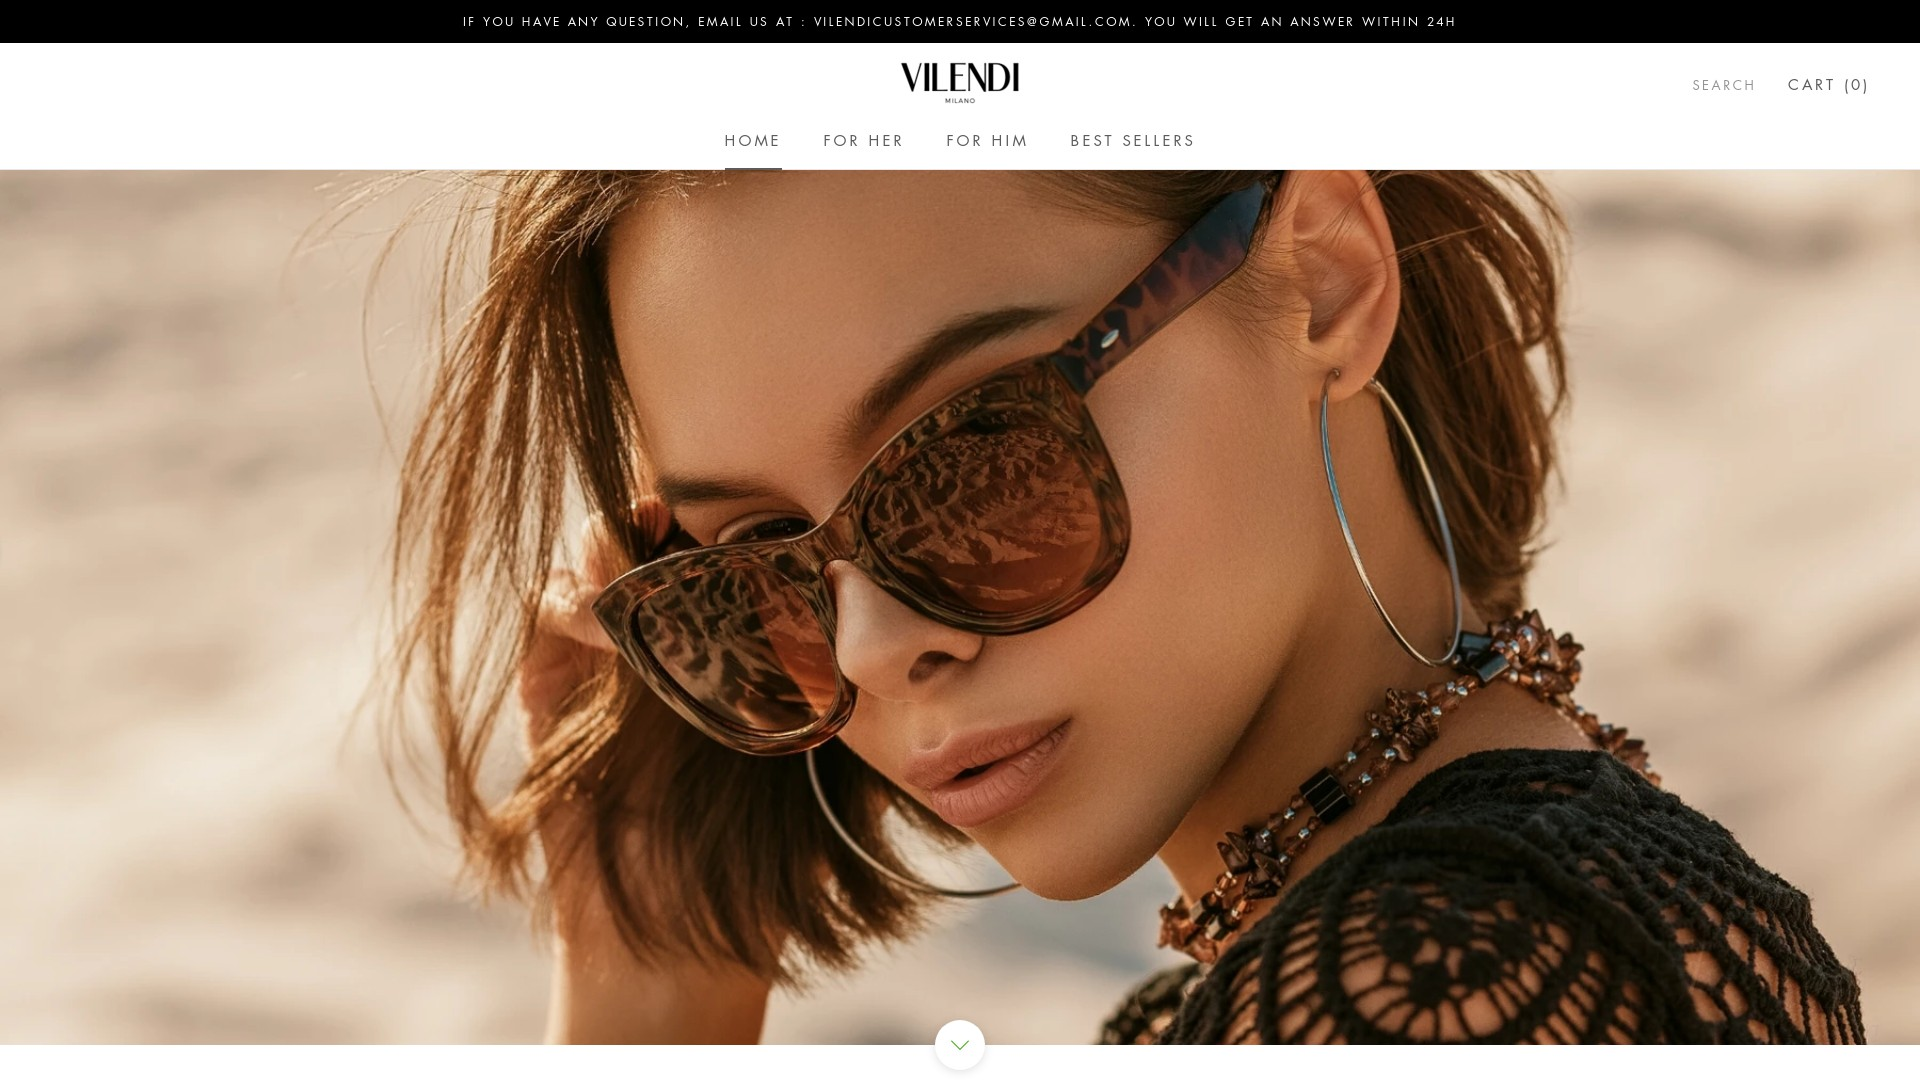 Is Vilendi a Scam? Review of the Sunglass Store